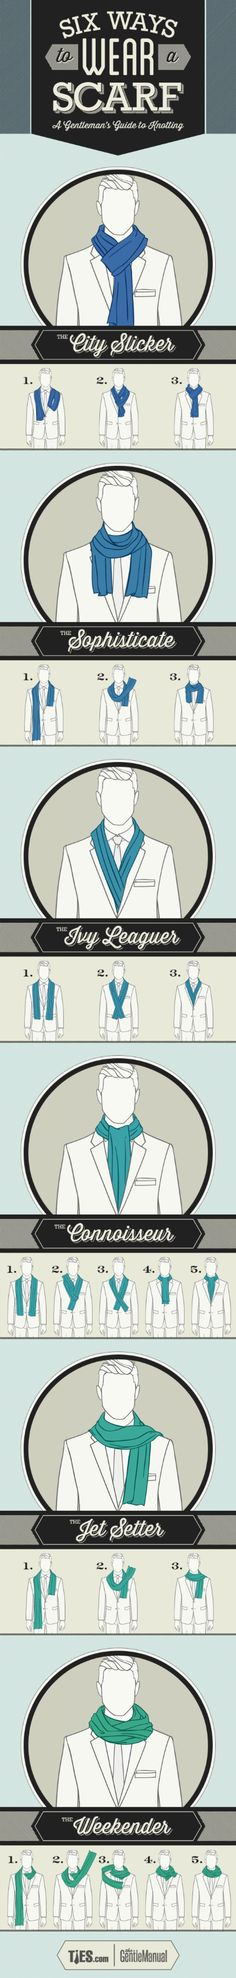 Ways to tie a scarf for gentlemen. I think the ladies can pull off most of these too.